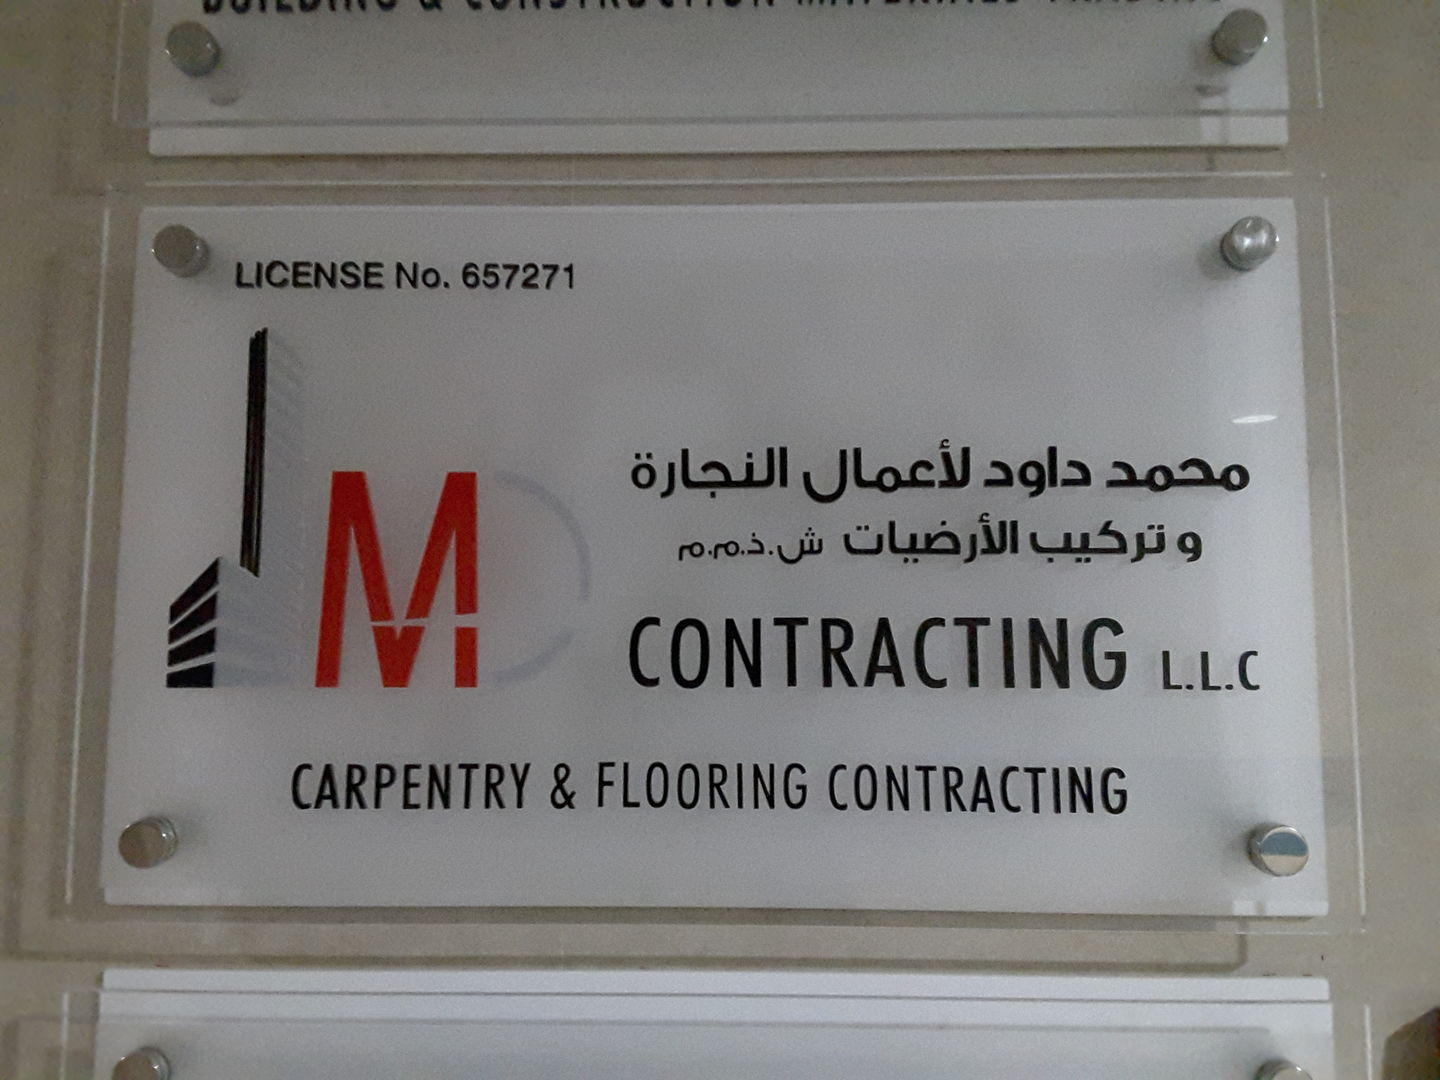 HiDubai-business-mohammed-dawoud-carpentry-flooring-contracting-home-hardware-fittings-dubai-silicon-oasis-nadd-hessa-dubai-2